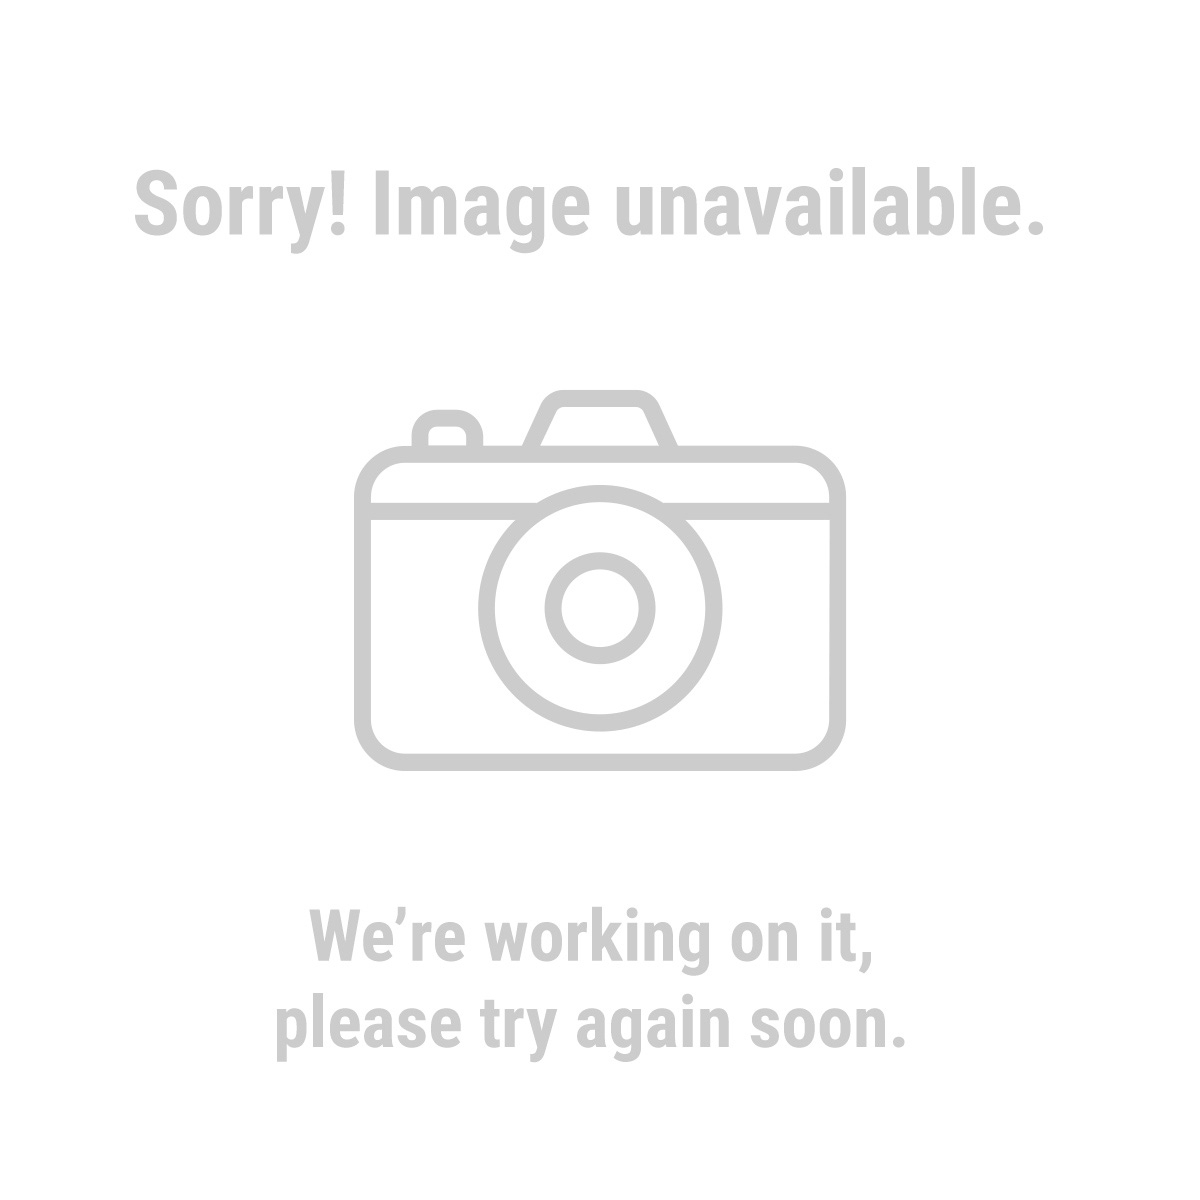 rc remote control motorcycle with 35 Channel Remote Control Helicopter 62578 on Wireless Winch Remote Control 61474 together with 2064620 additionally Bikes together with Starter Ignition Circuit Thought likewise Product.